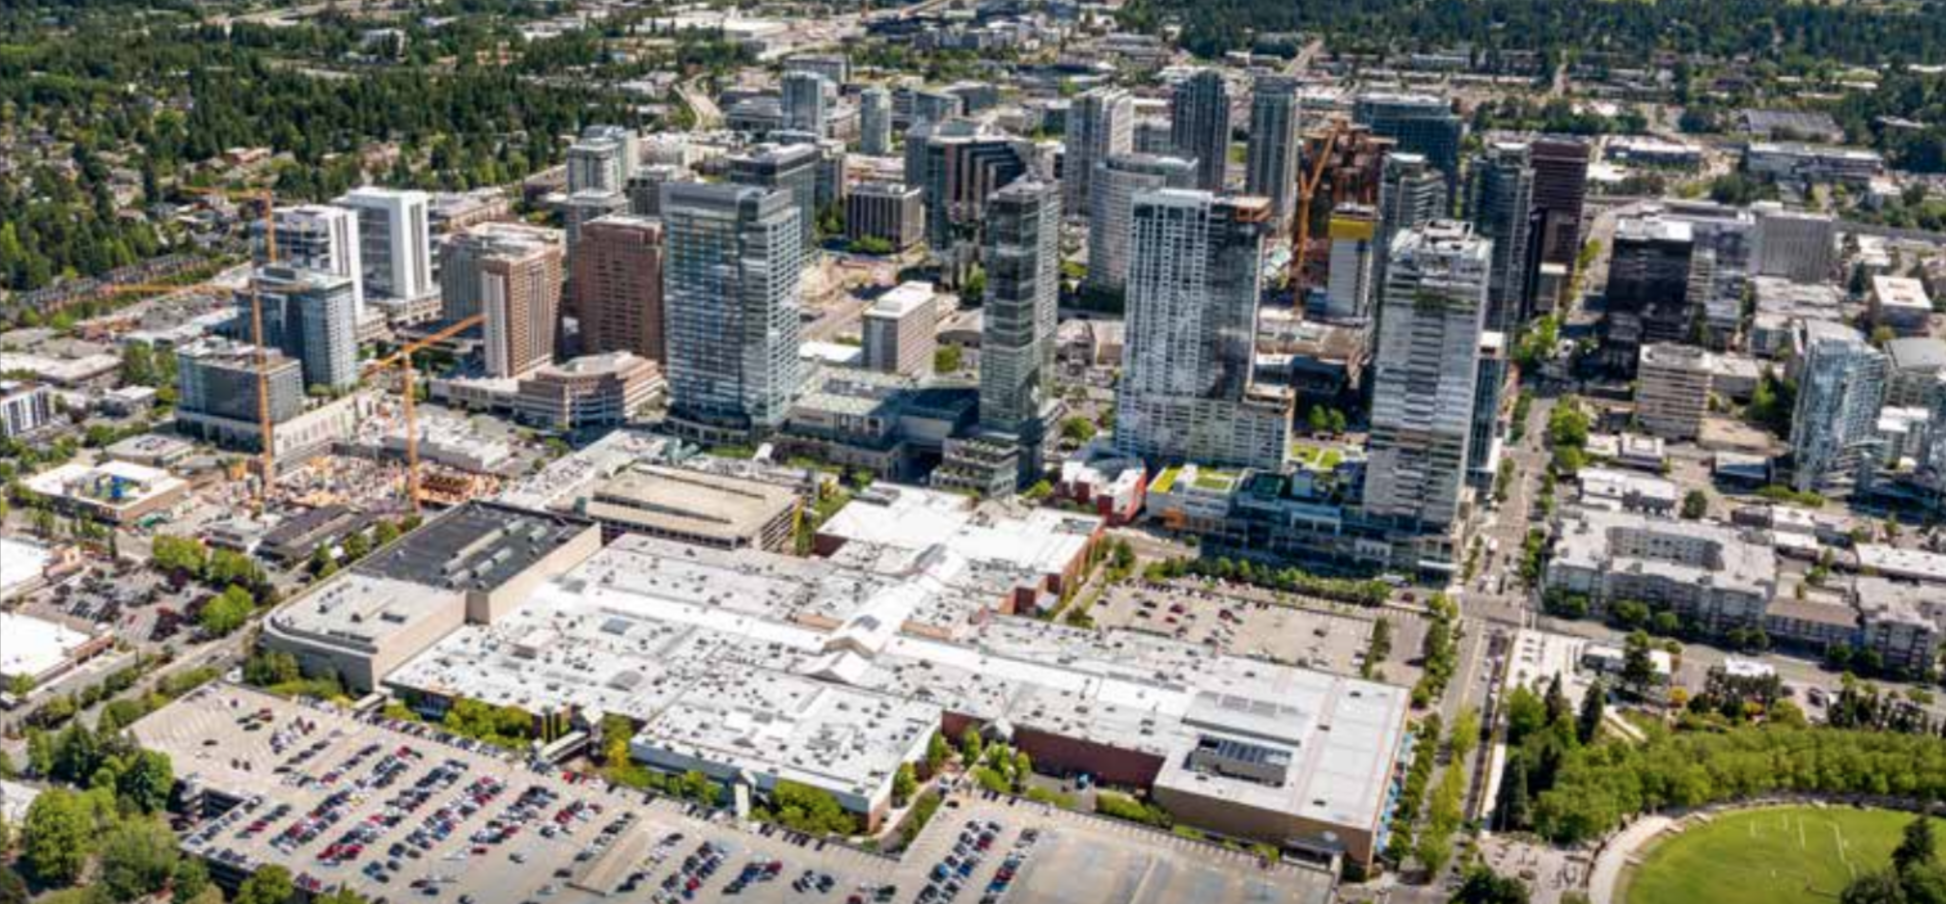 The Bellevue Collection today with 5.5 million square foot campus in Bellevue